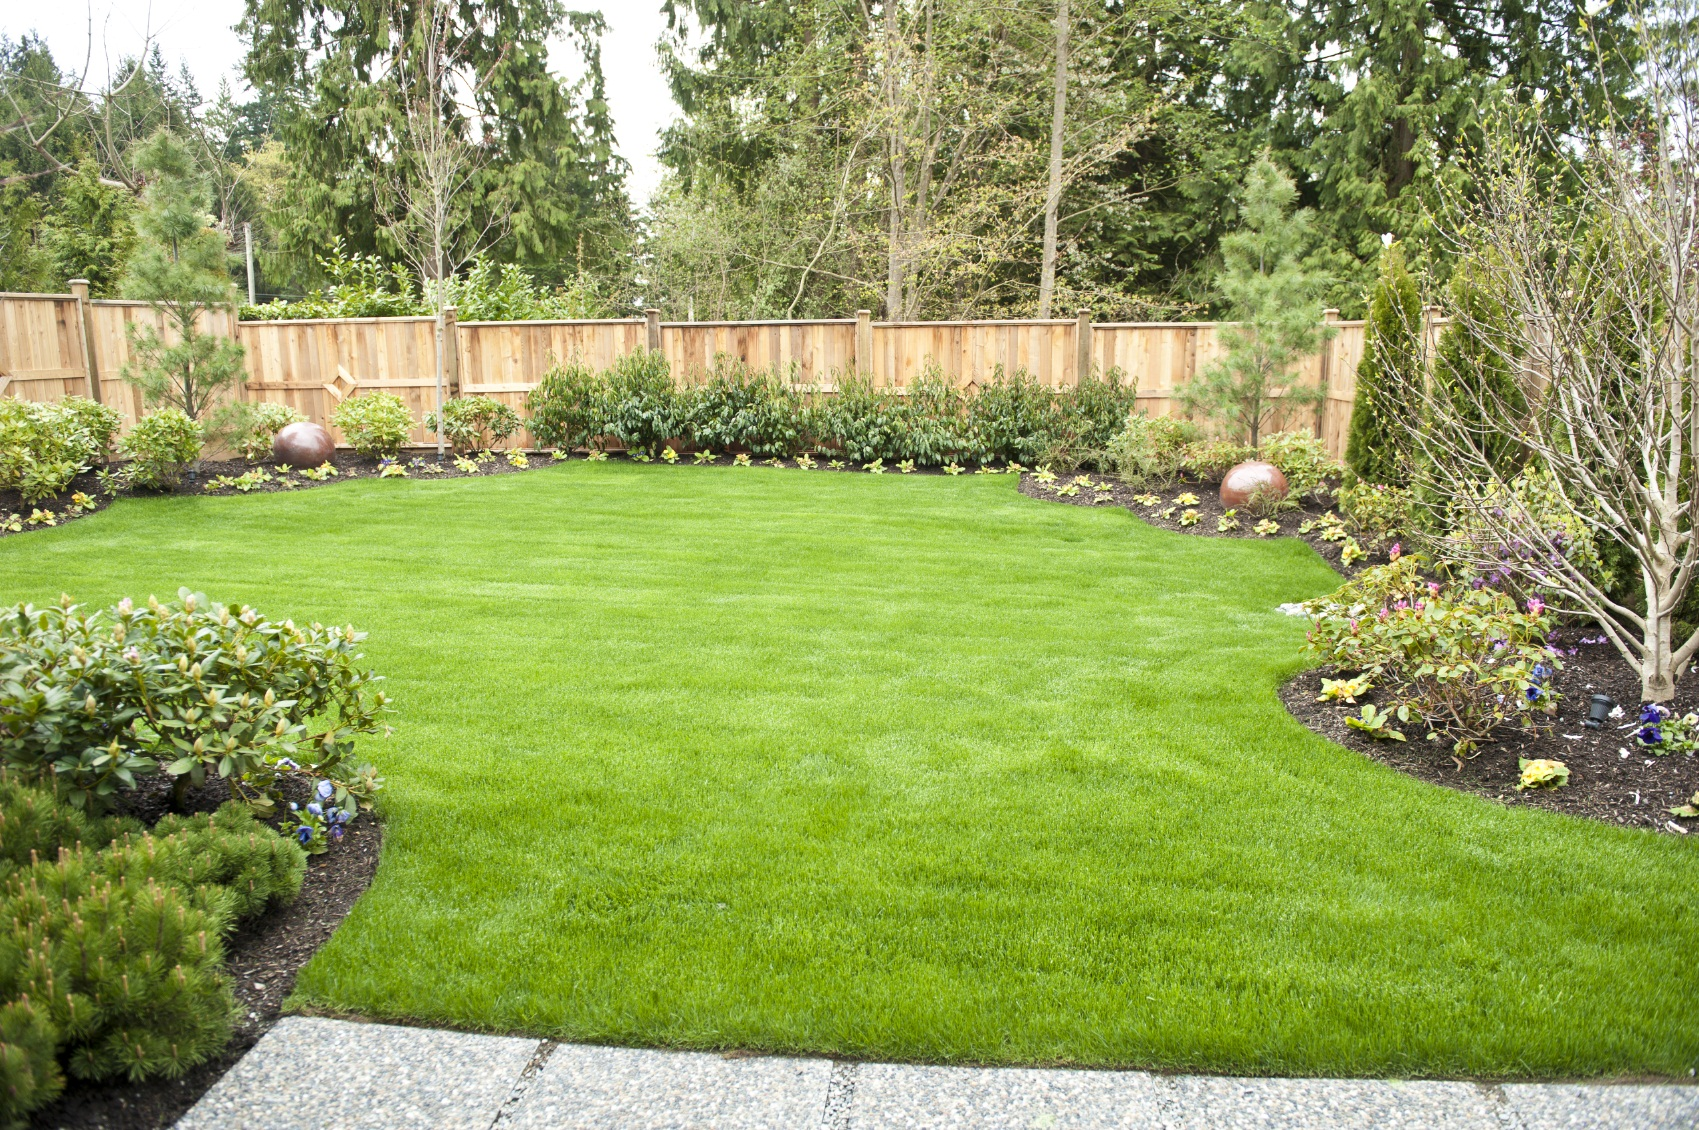 Backyard landscaping tips metamorphosis landscape design for Landscape garden design ideas